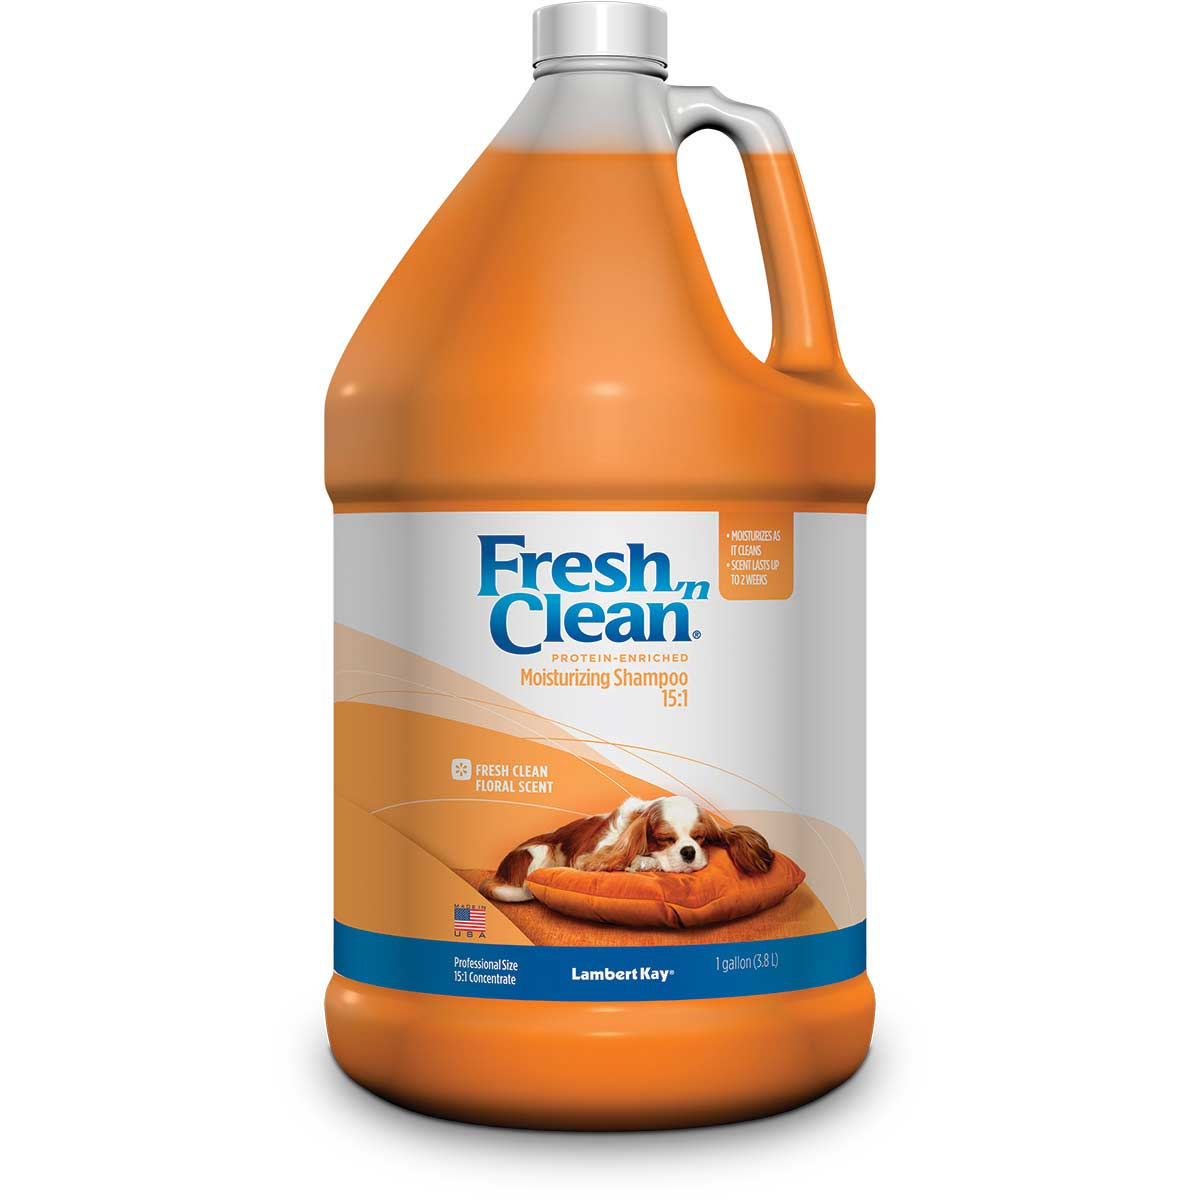 Fresh 'n Clean Protein Enriched Moisturizing Scented Shampoo Concentrated 15:1 Gallon